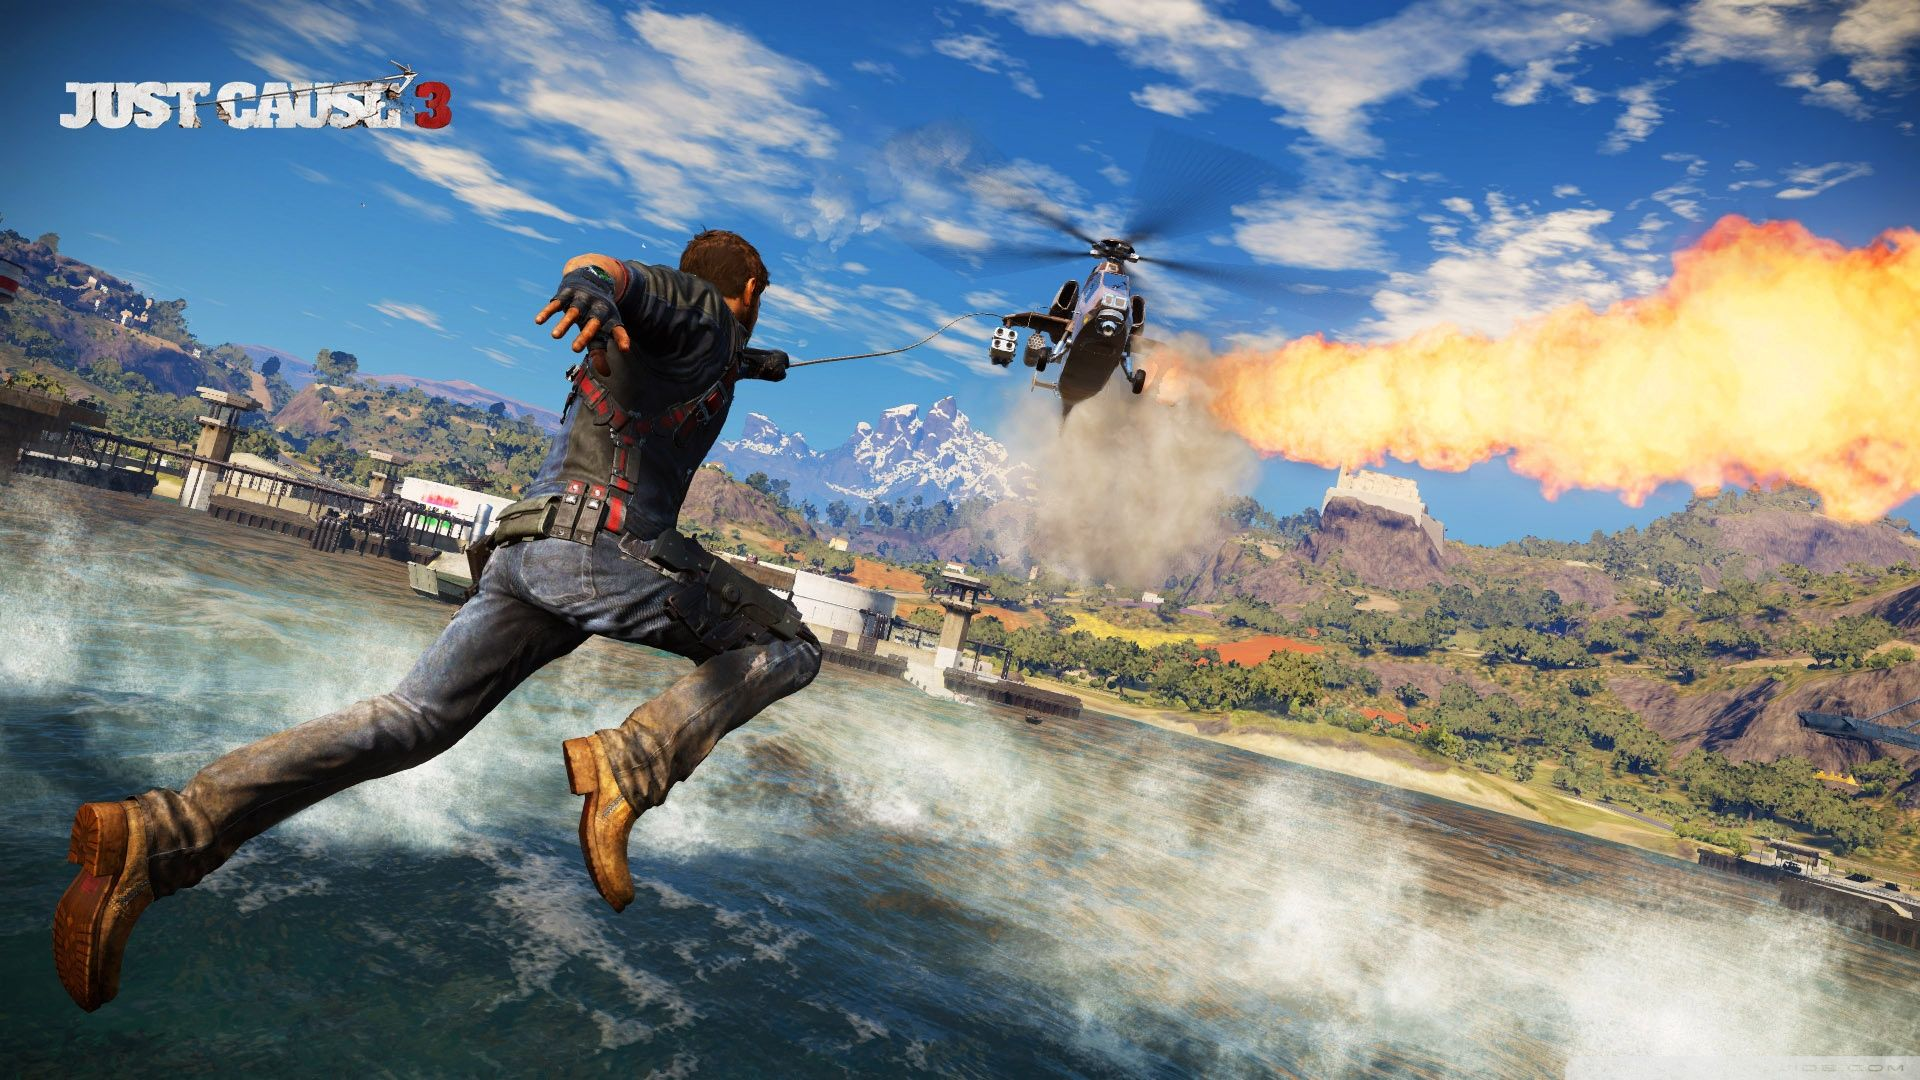 Just Cause 3 Ultra Hd Wallpaper For 4k Uhd Widescreen Desktop Tablet Smartphone Games Just Cause 3 Avalanche Studios Video Game Reviews